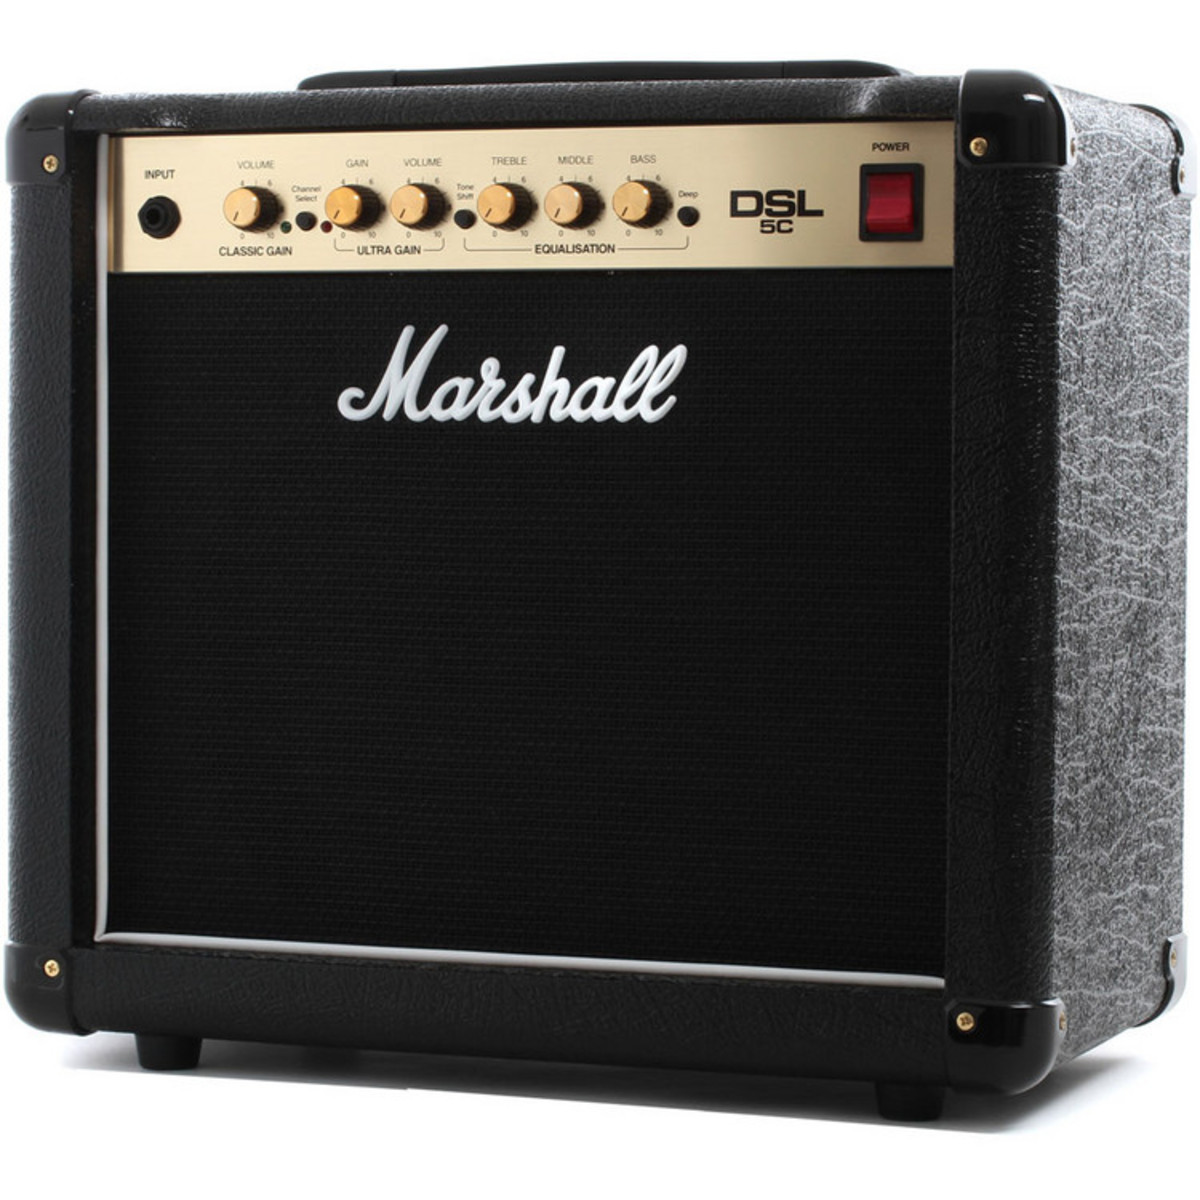 marshall dsl5c valve 2 channel 1x10 guitar combo amp at gear4music. Black Bedroom Furniture Sets. Home Design Ideas